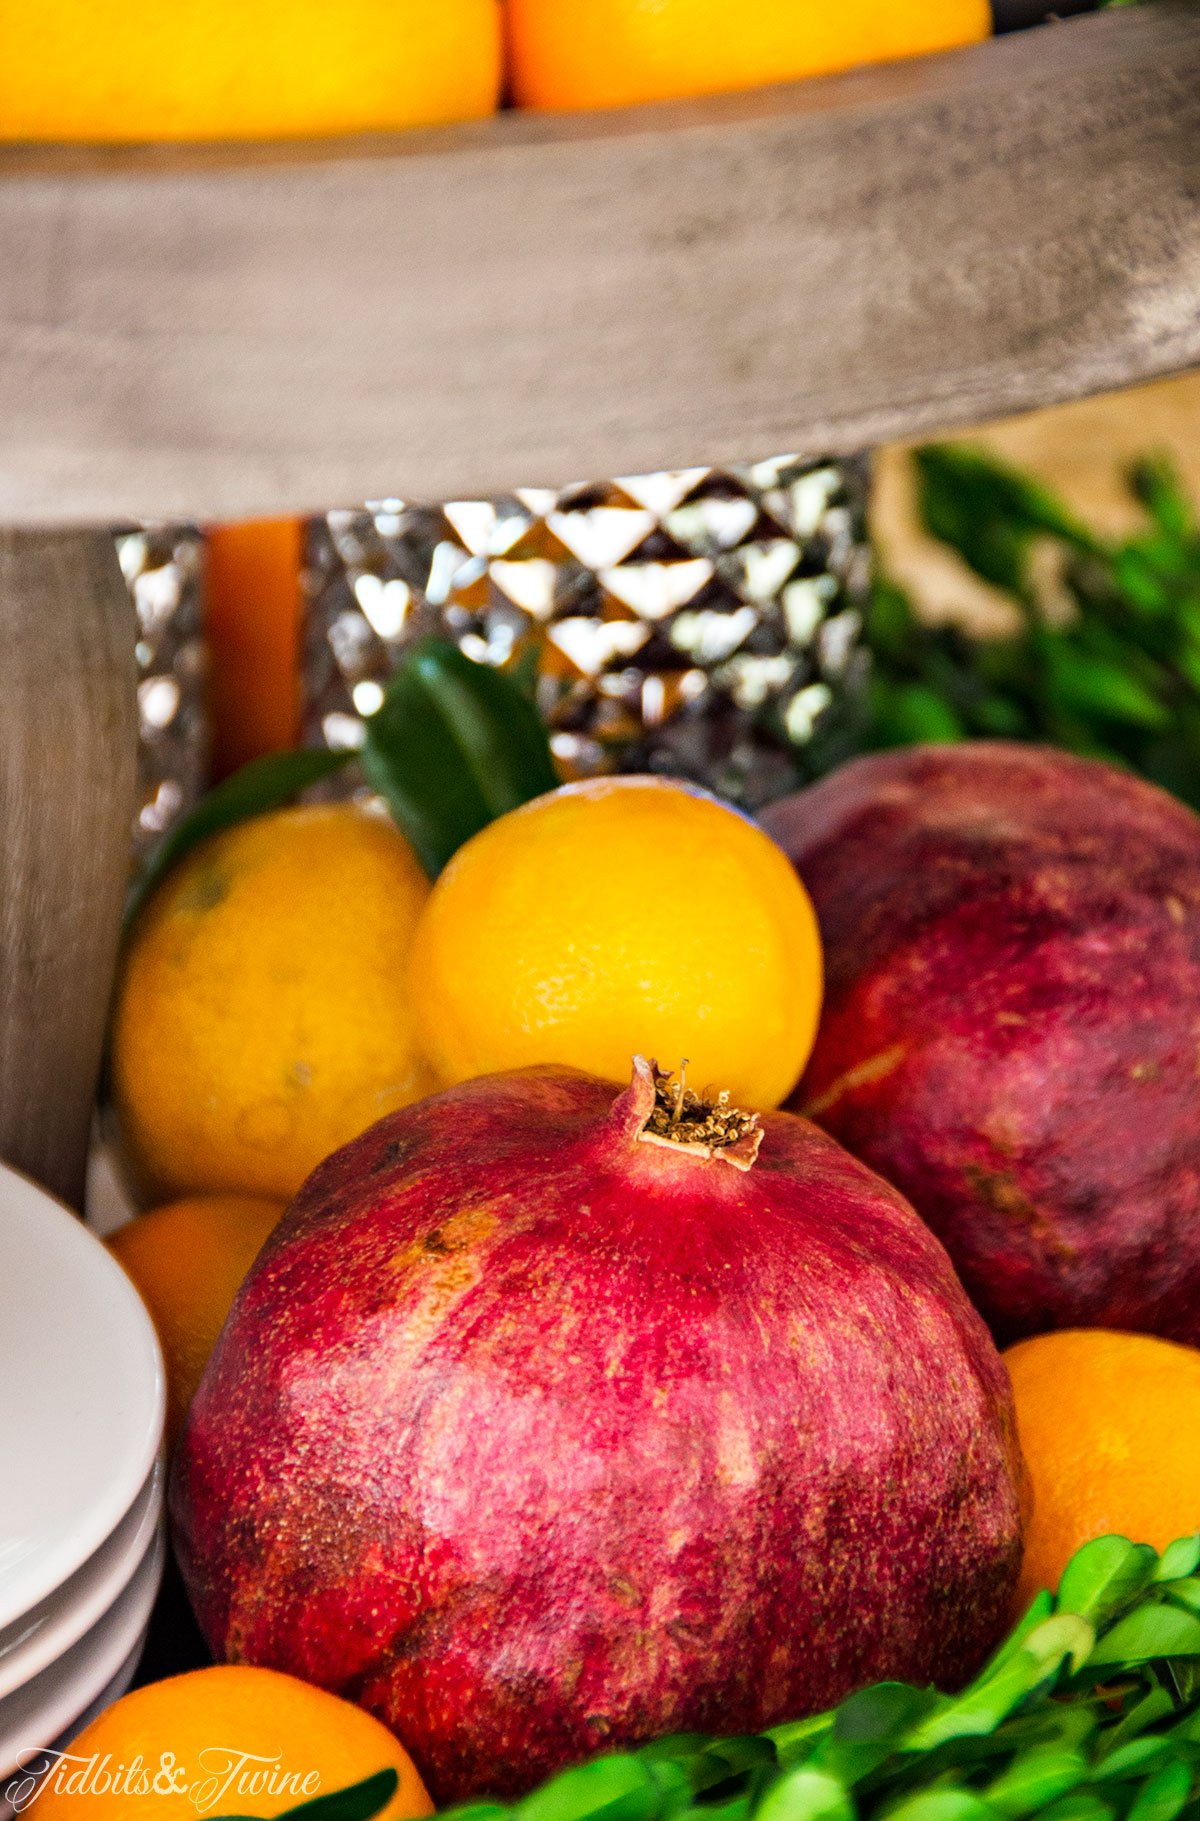 TIDBITS&TWINE Christmas Kitchen 2015 Pomegranate and Orange Vignette